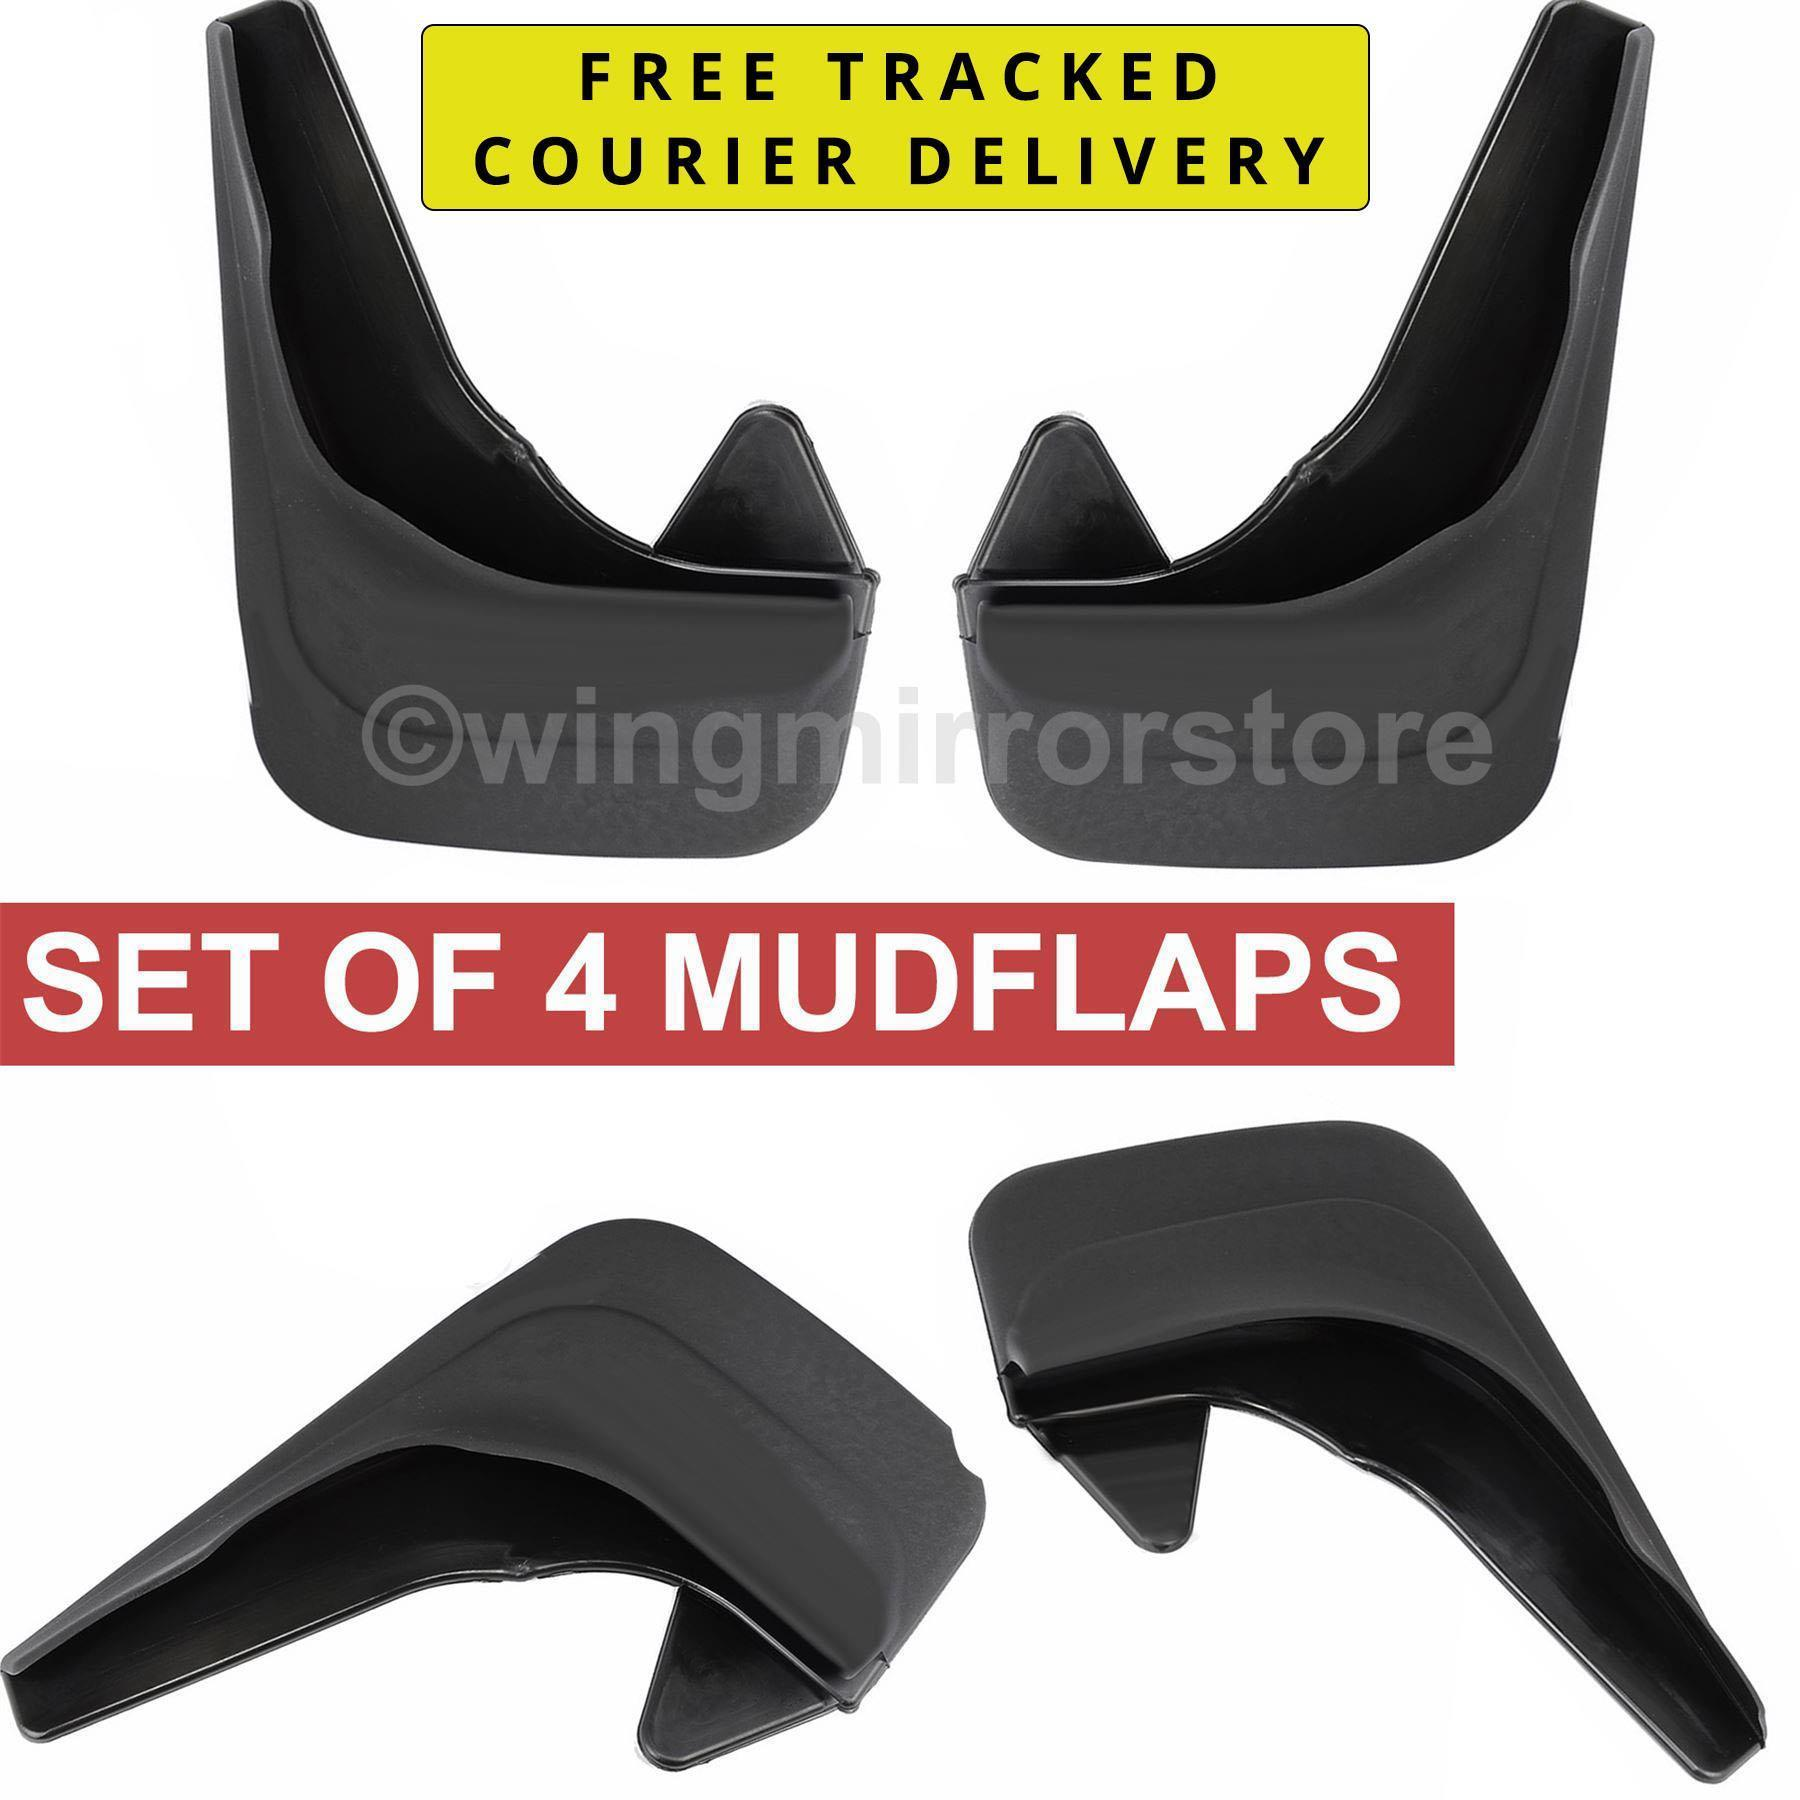 Rear and Front Mud Flaps for Nissan Micra K11 Rubber Moulded set of 4